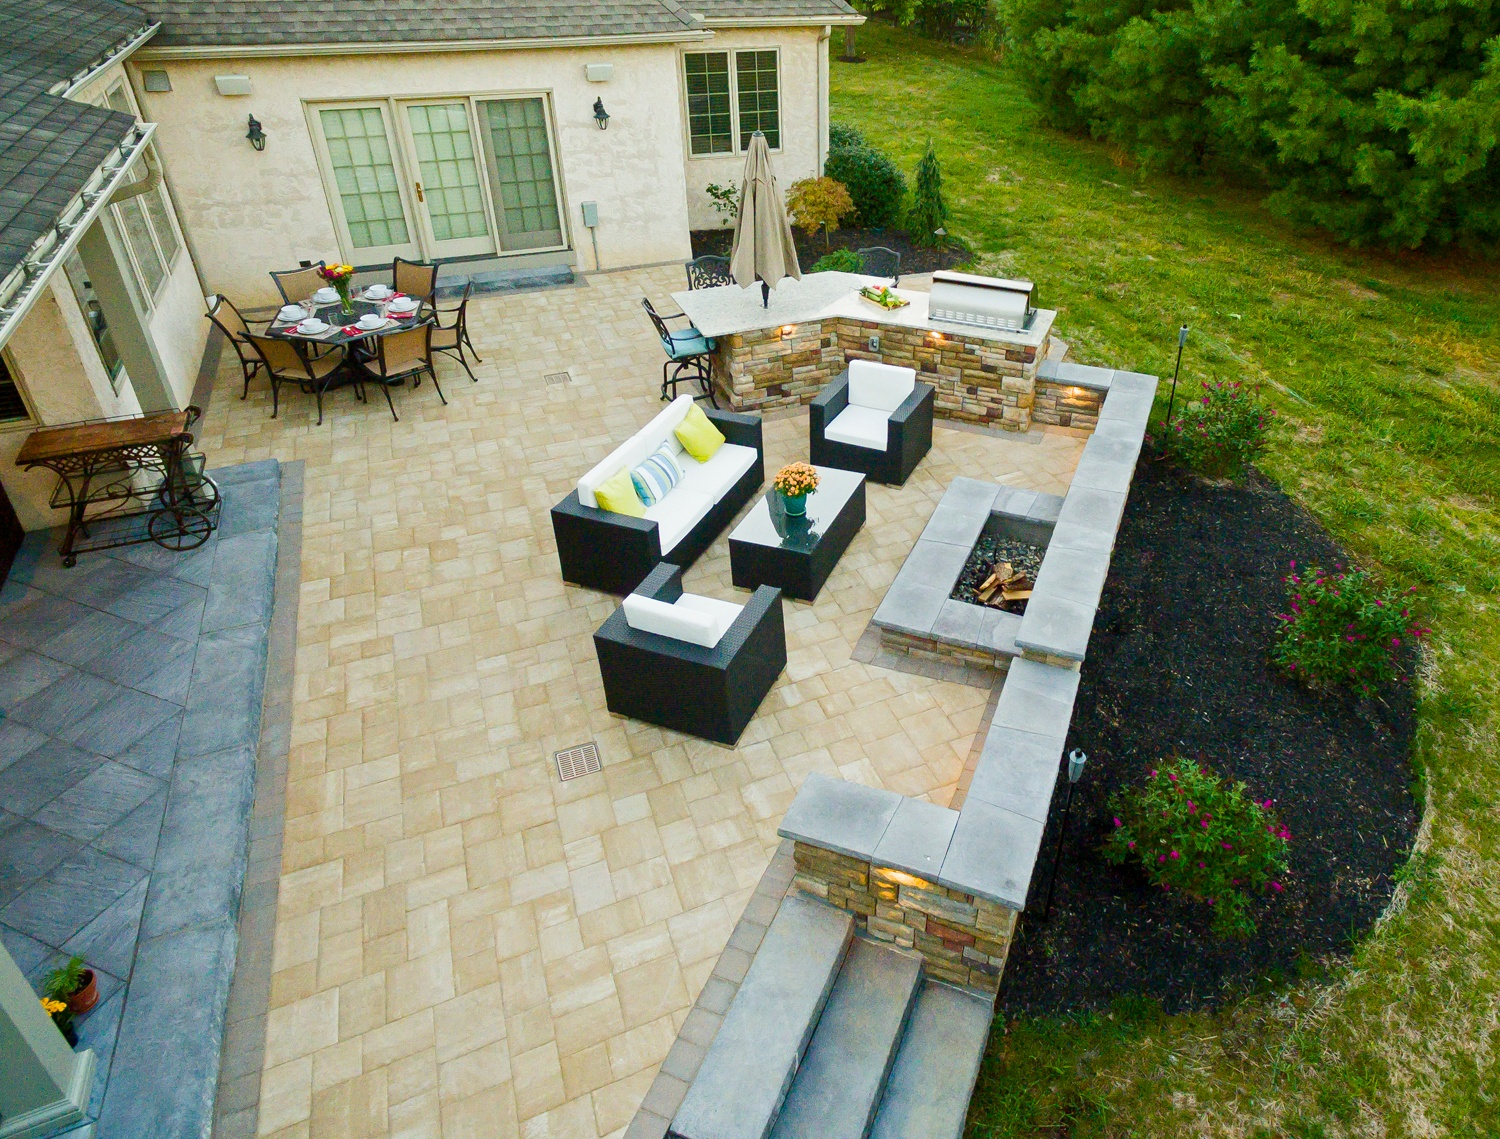 Superior Learn Paver Patio Cost And Natural Stone Prices For Your Home In Reading Or  Lancaster,